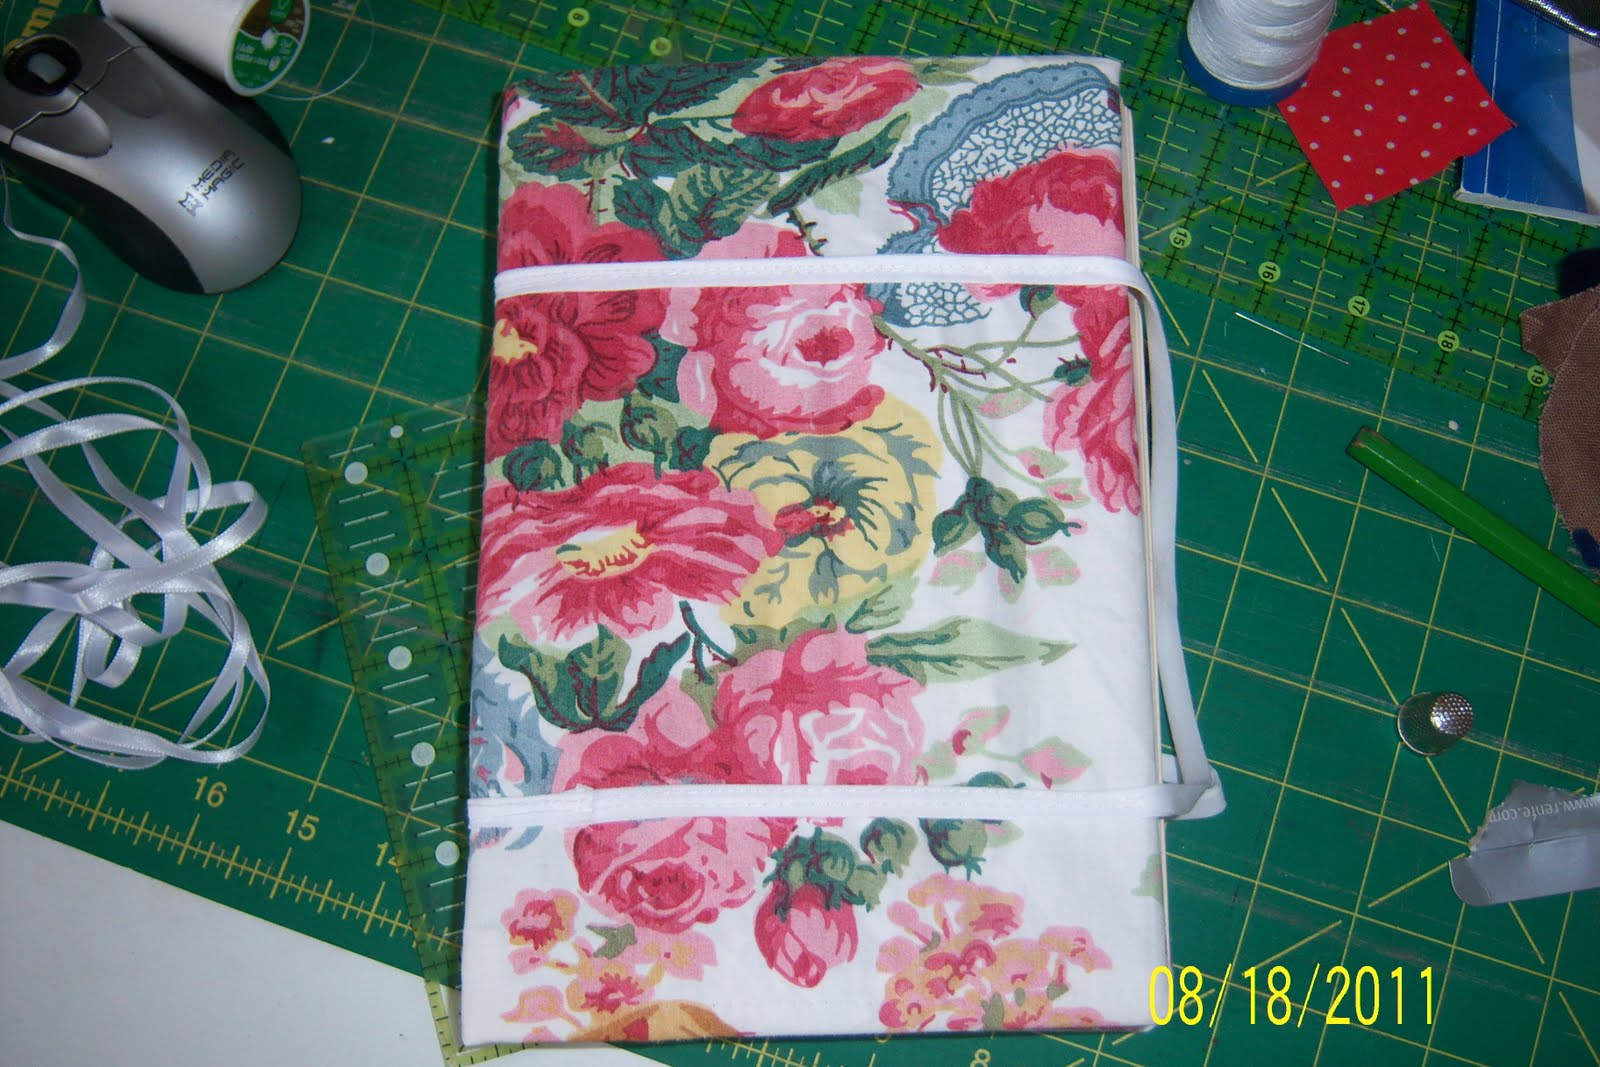 Libros Patchwork Gratis Patchwork And Quilts De Teresamdv Funda De Libro